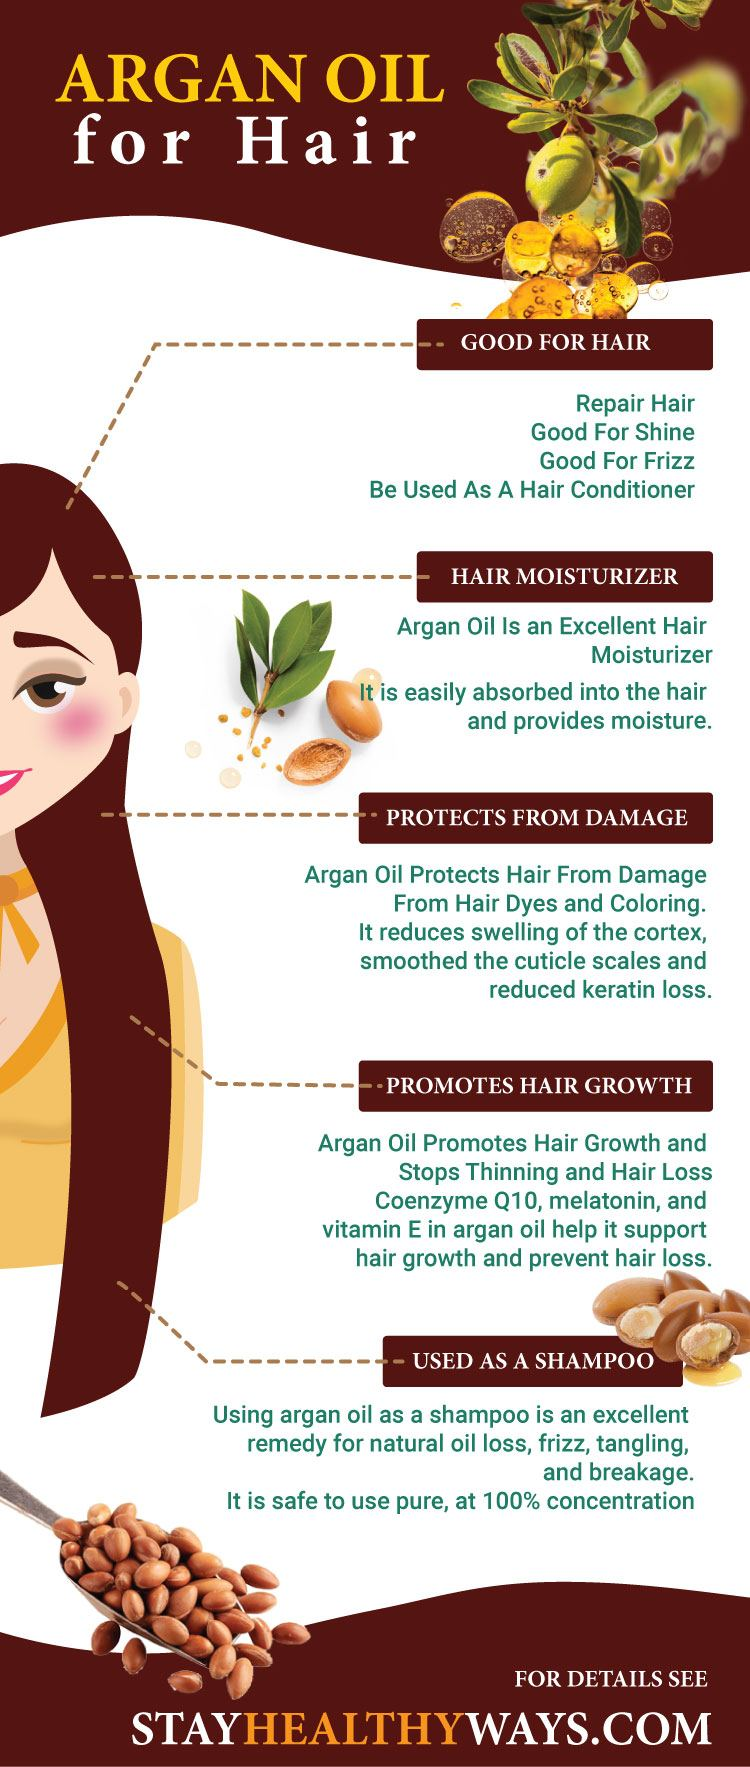 argan oil for hair infographic